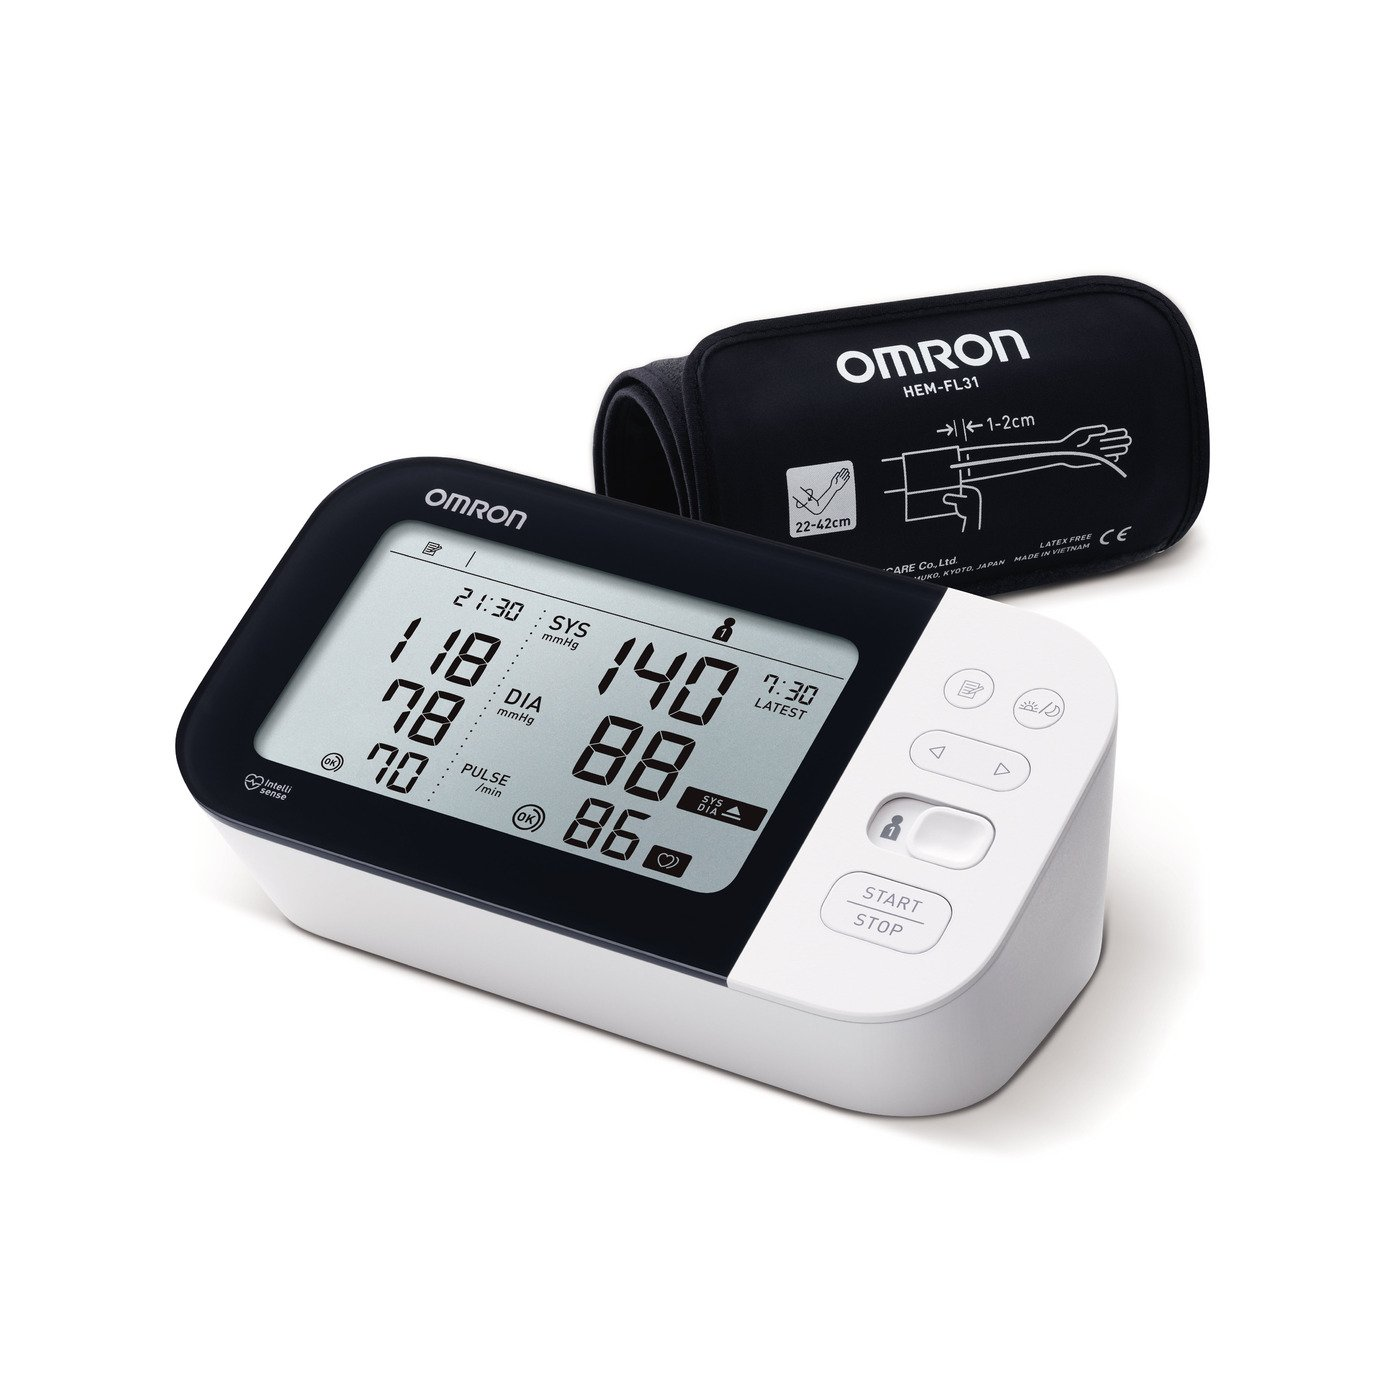 Omron M7 Intelii IT Blood Pressure Monitor